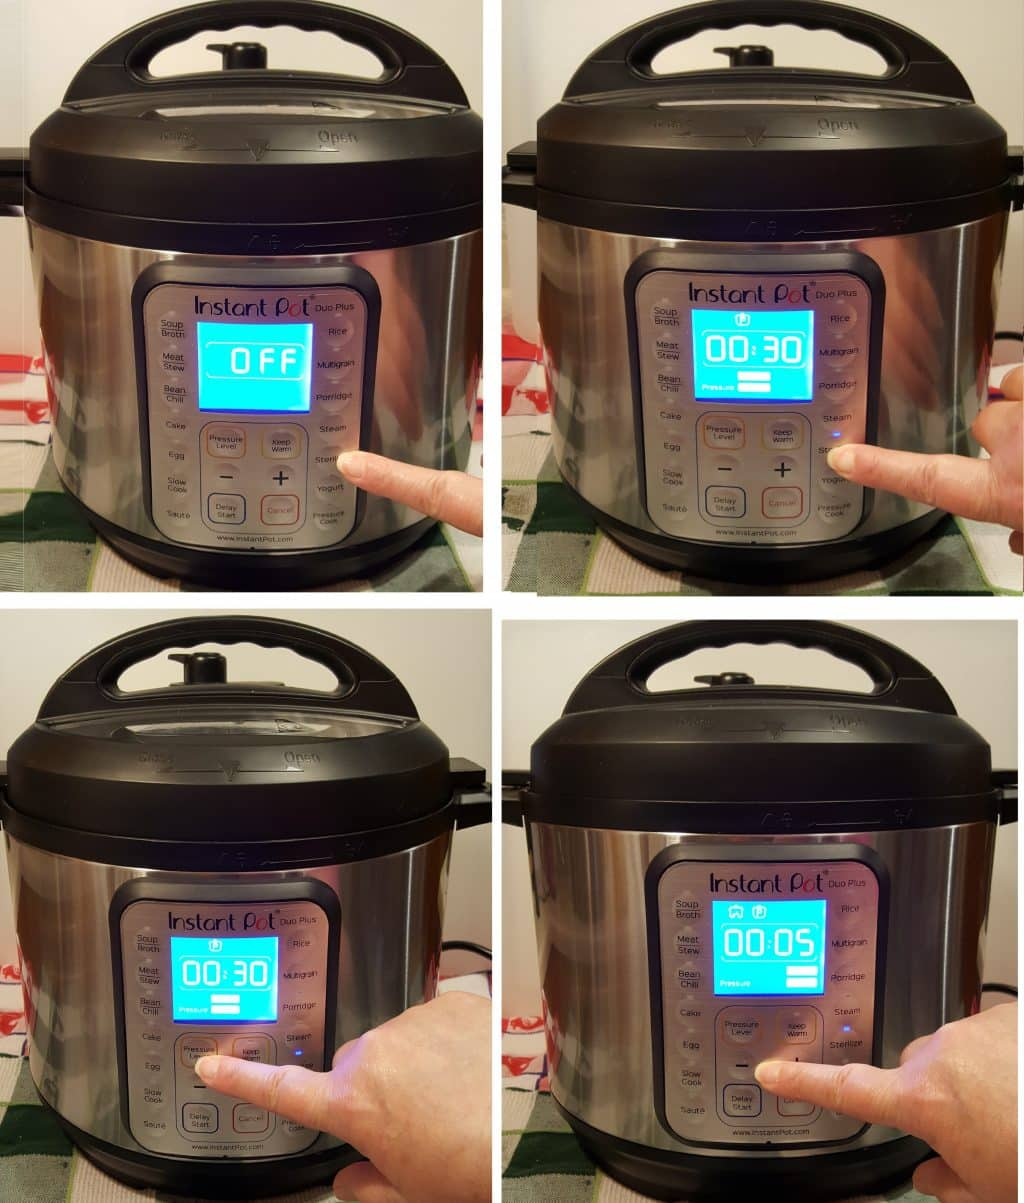 Sterilize your Instant Pot DUO Plus